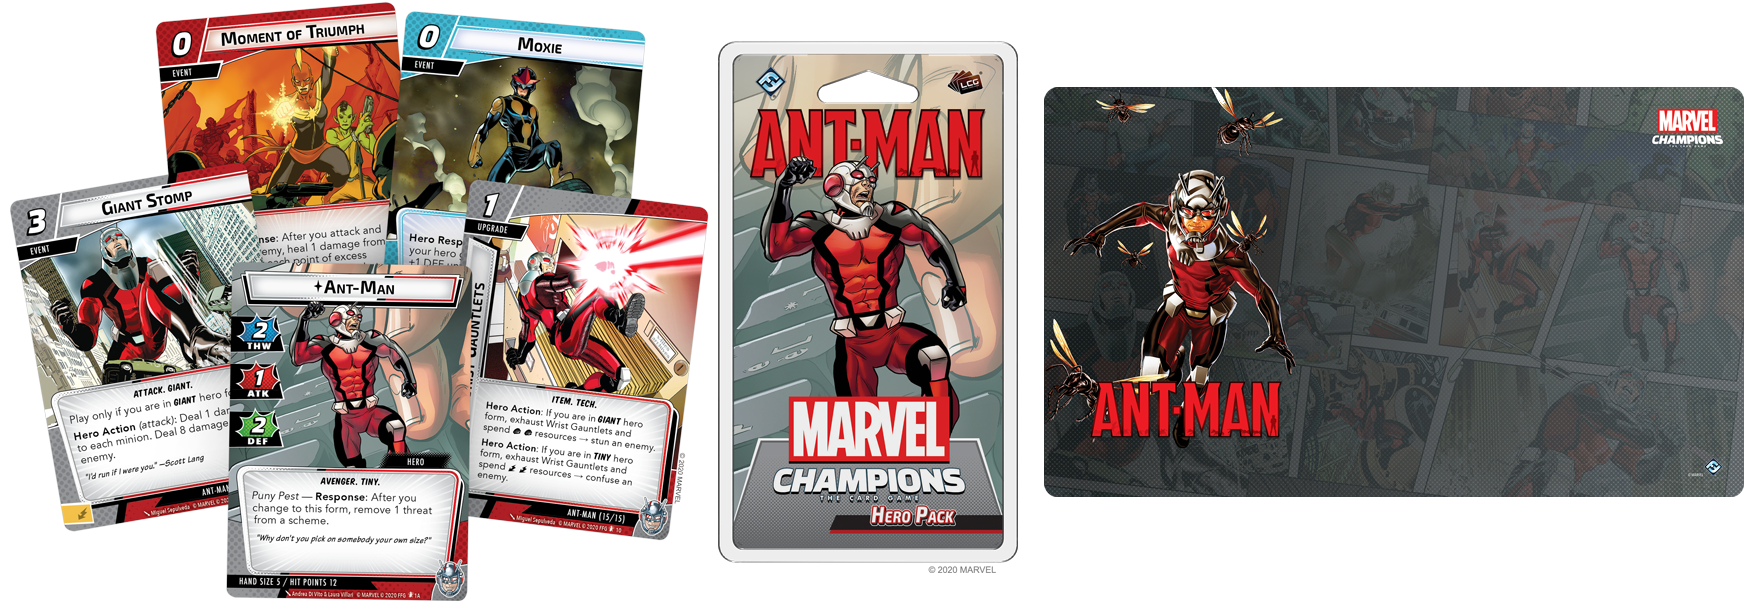 Ant-Man cards